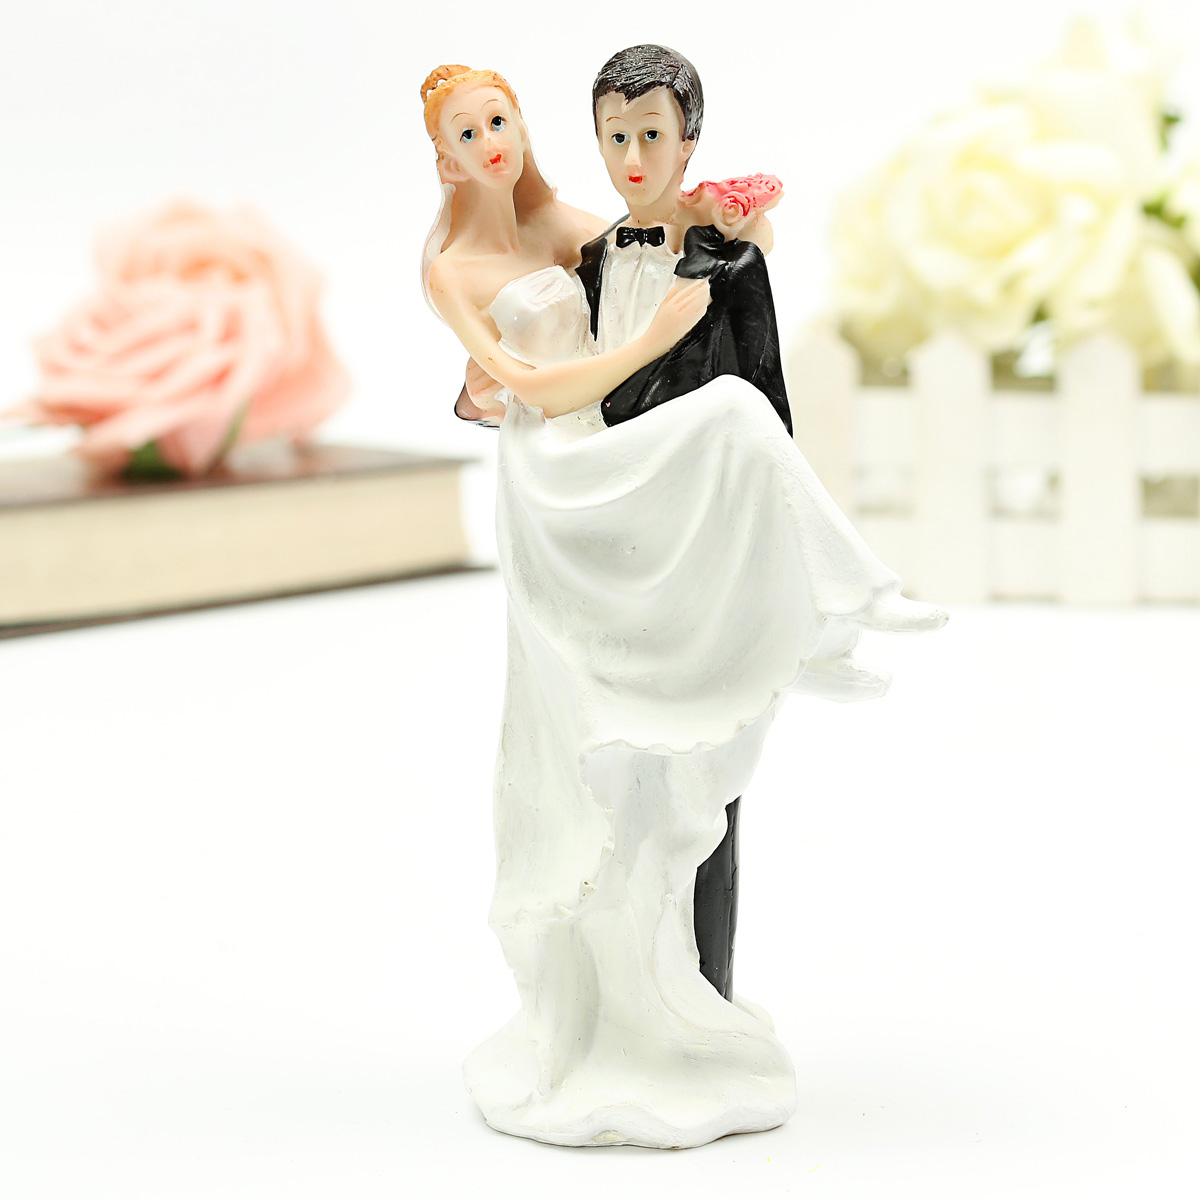 Bride and Groom Wedding Cake Topper of Love Wedding Romantic Couple     Bride and Groom Wedding Cake Topper of Love Wedding Romantic Couple Love  Favors Figurine Decor DIY